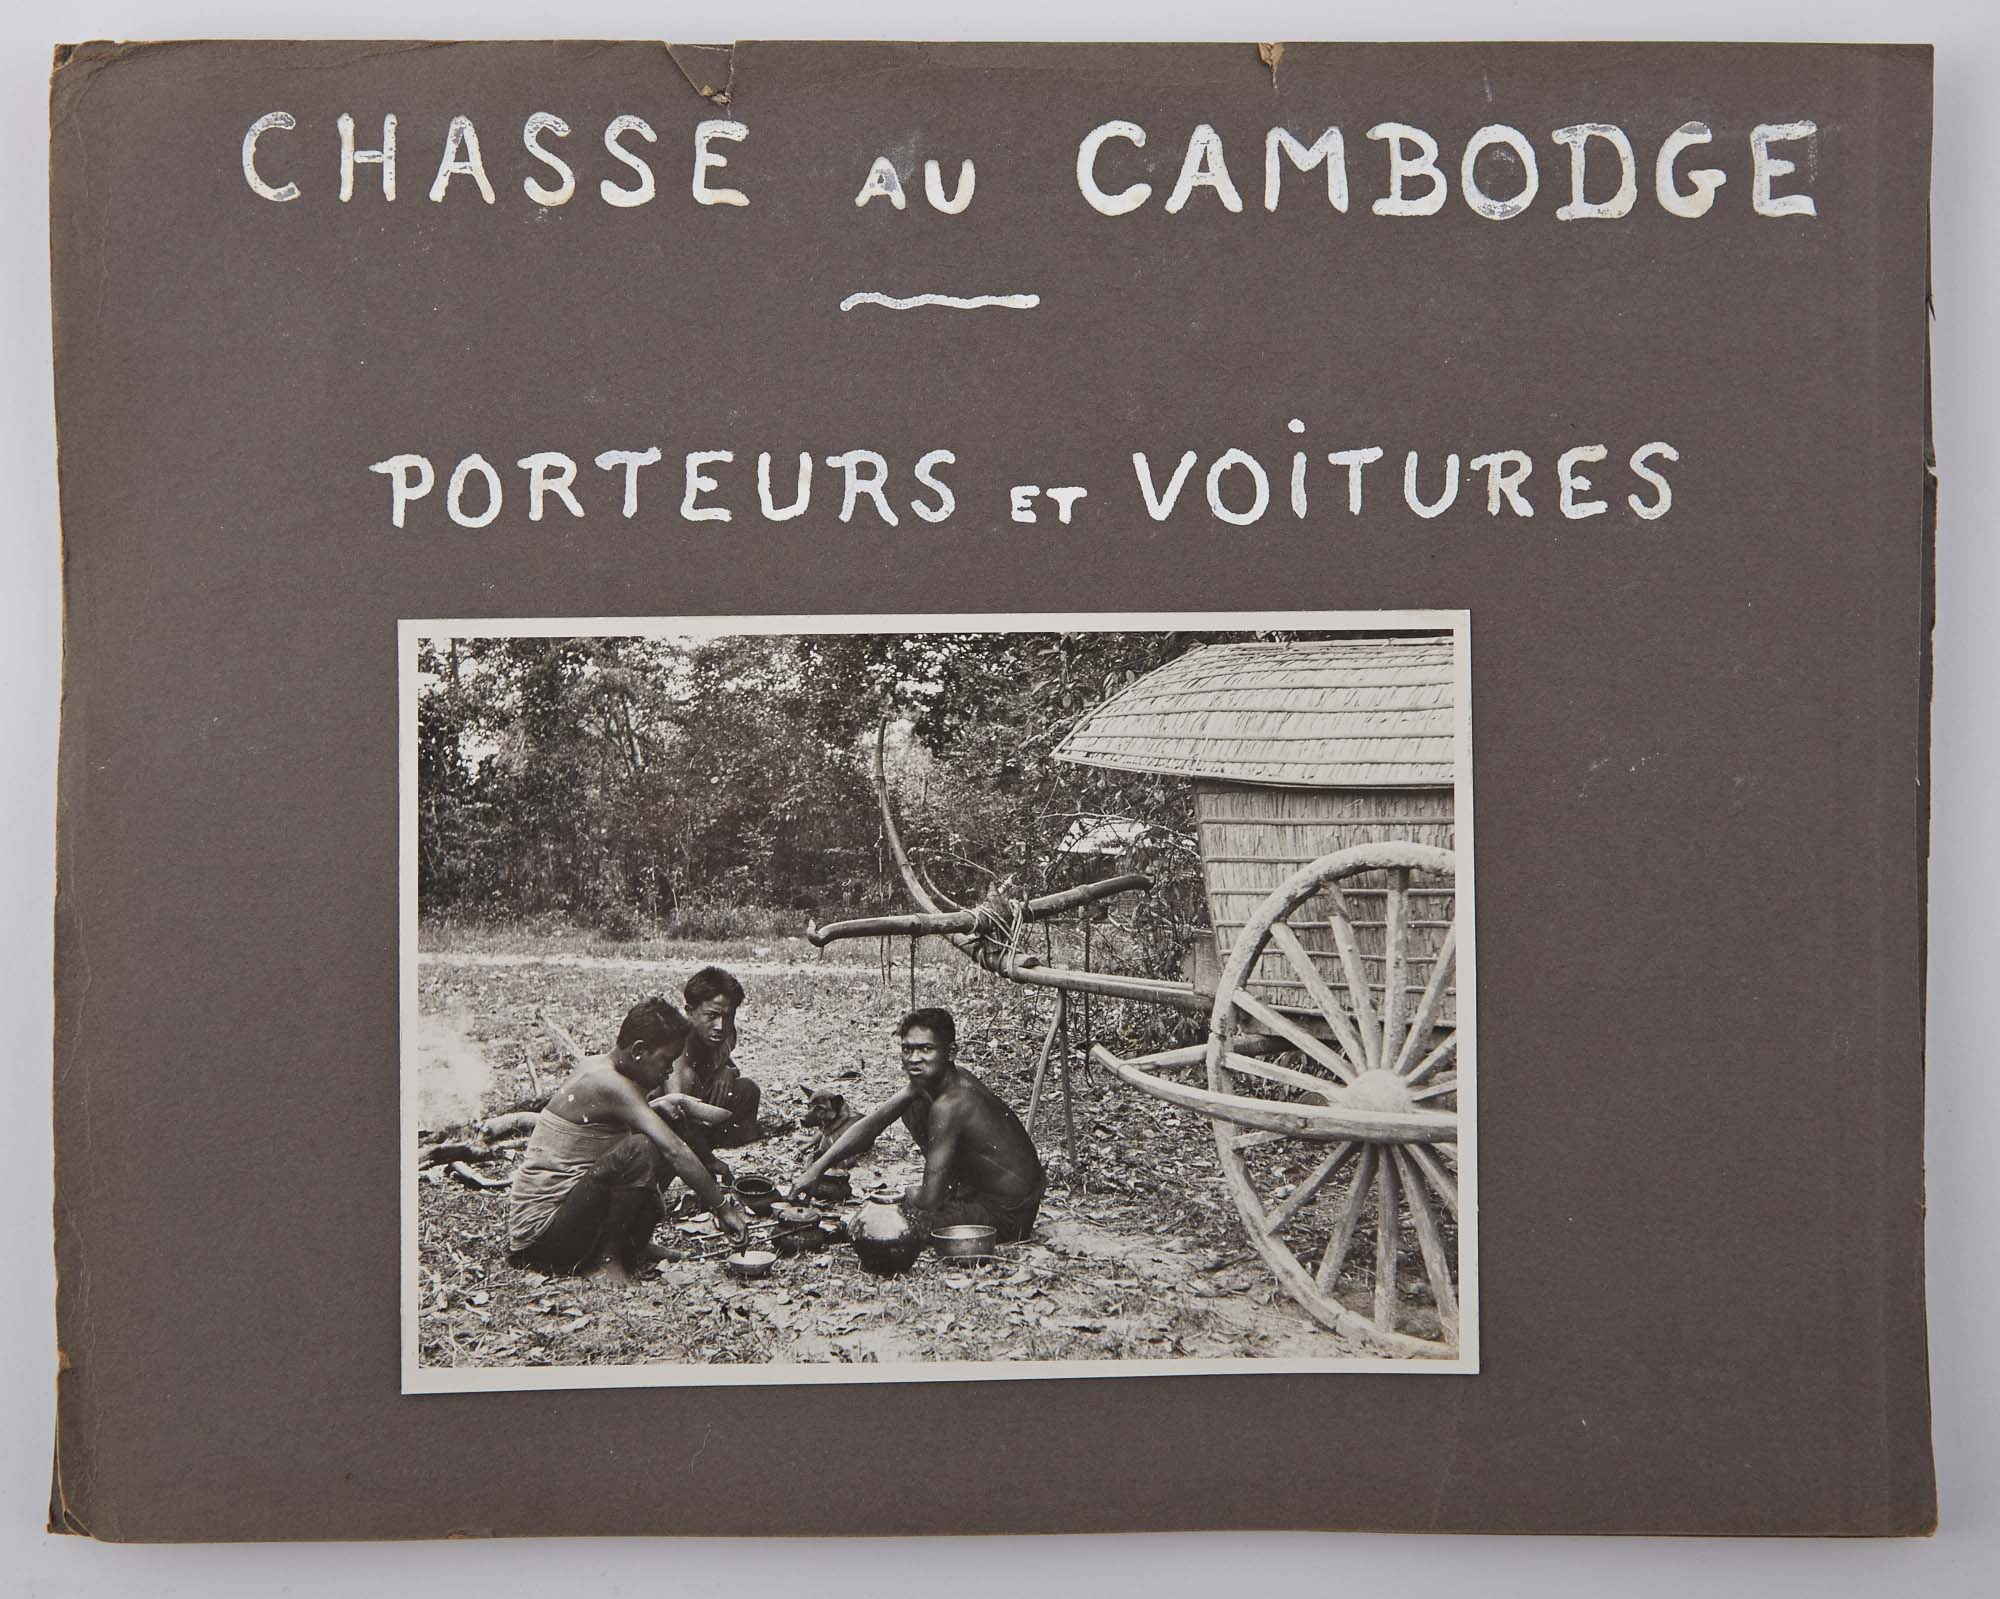 Lot image - [CAMBODIA - TIGER HUNTING]  Maquette for unpublished work Chasse au Cambodge/Porteurs et Voitures.